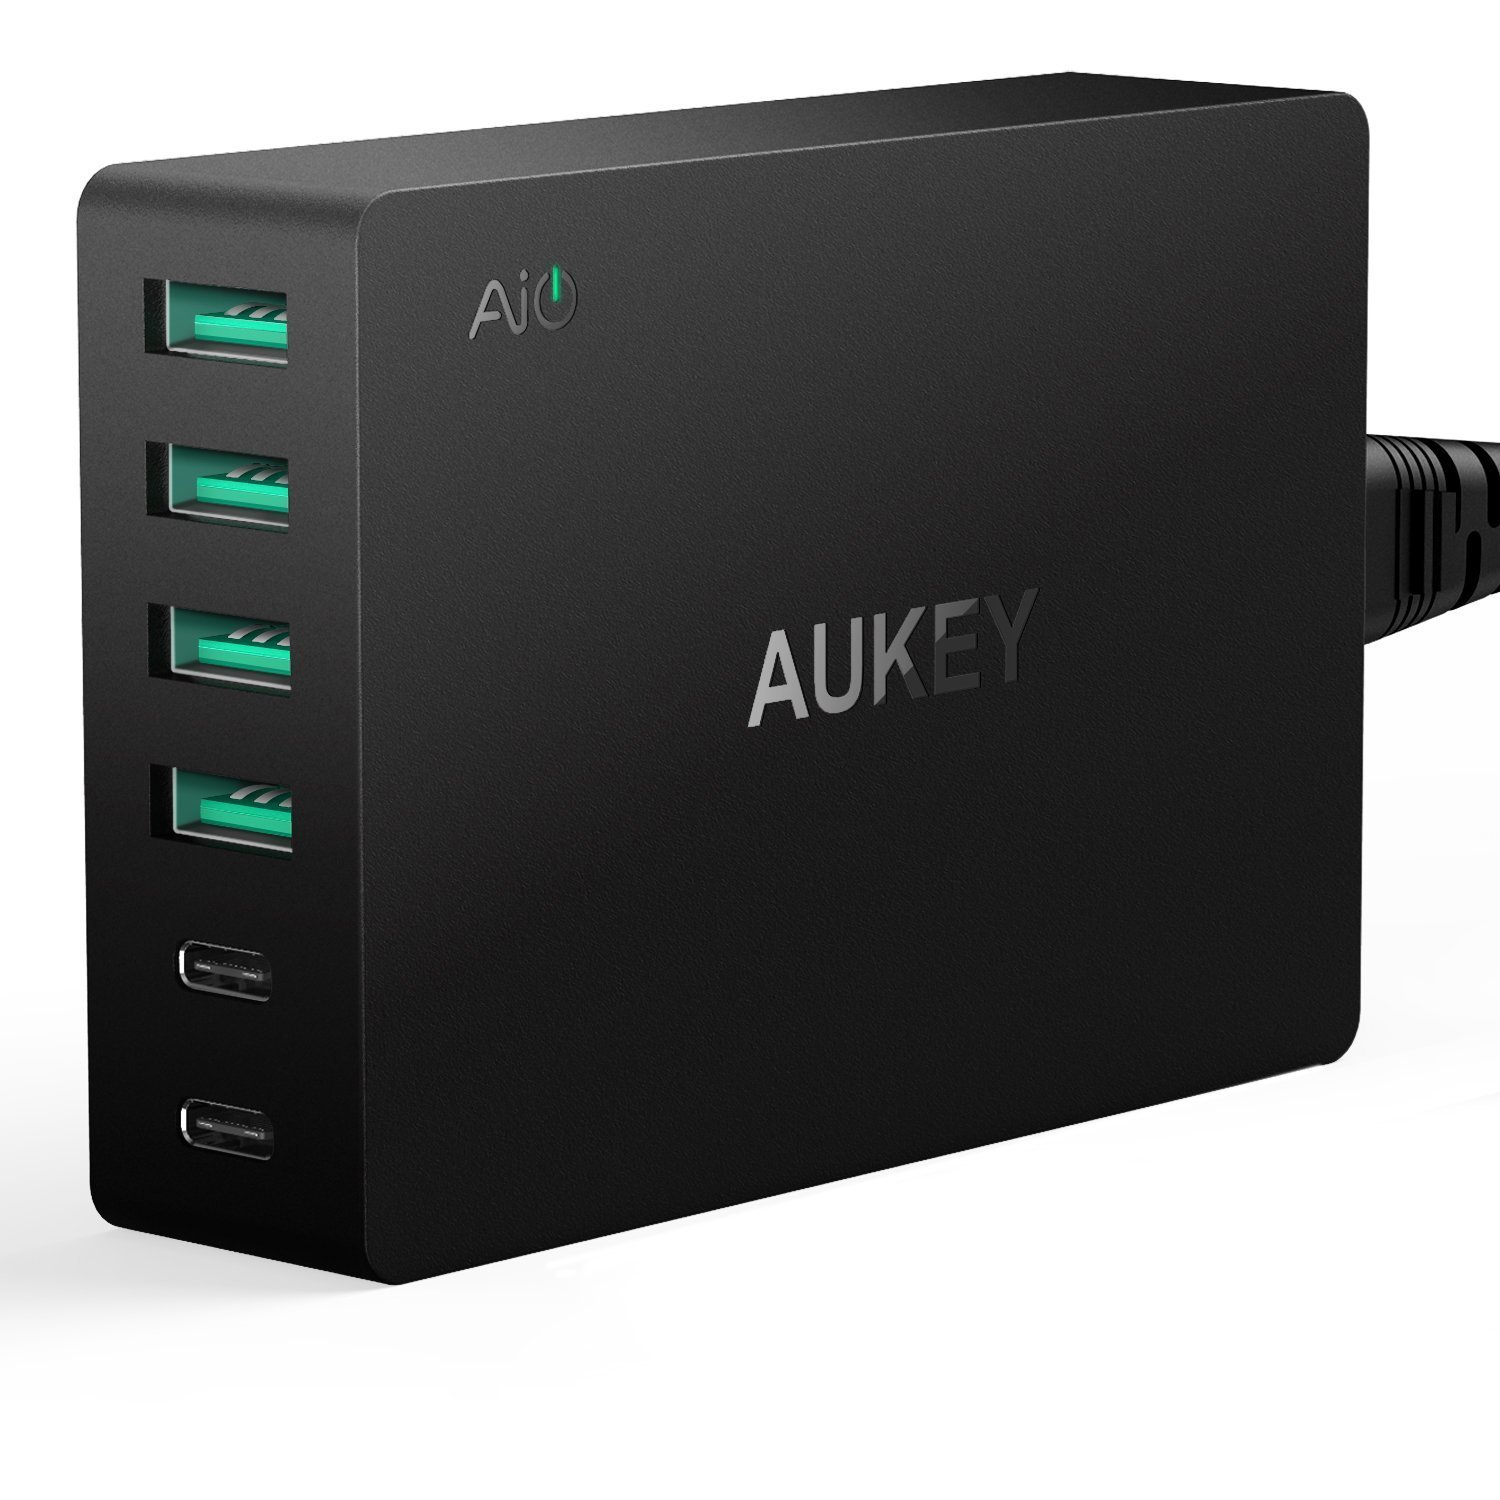 aukey-6-port-charger.jpg